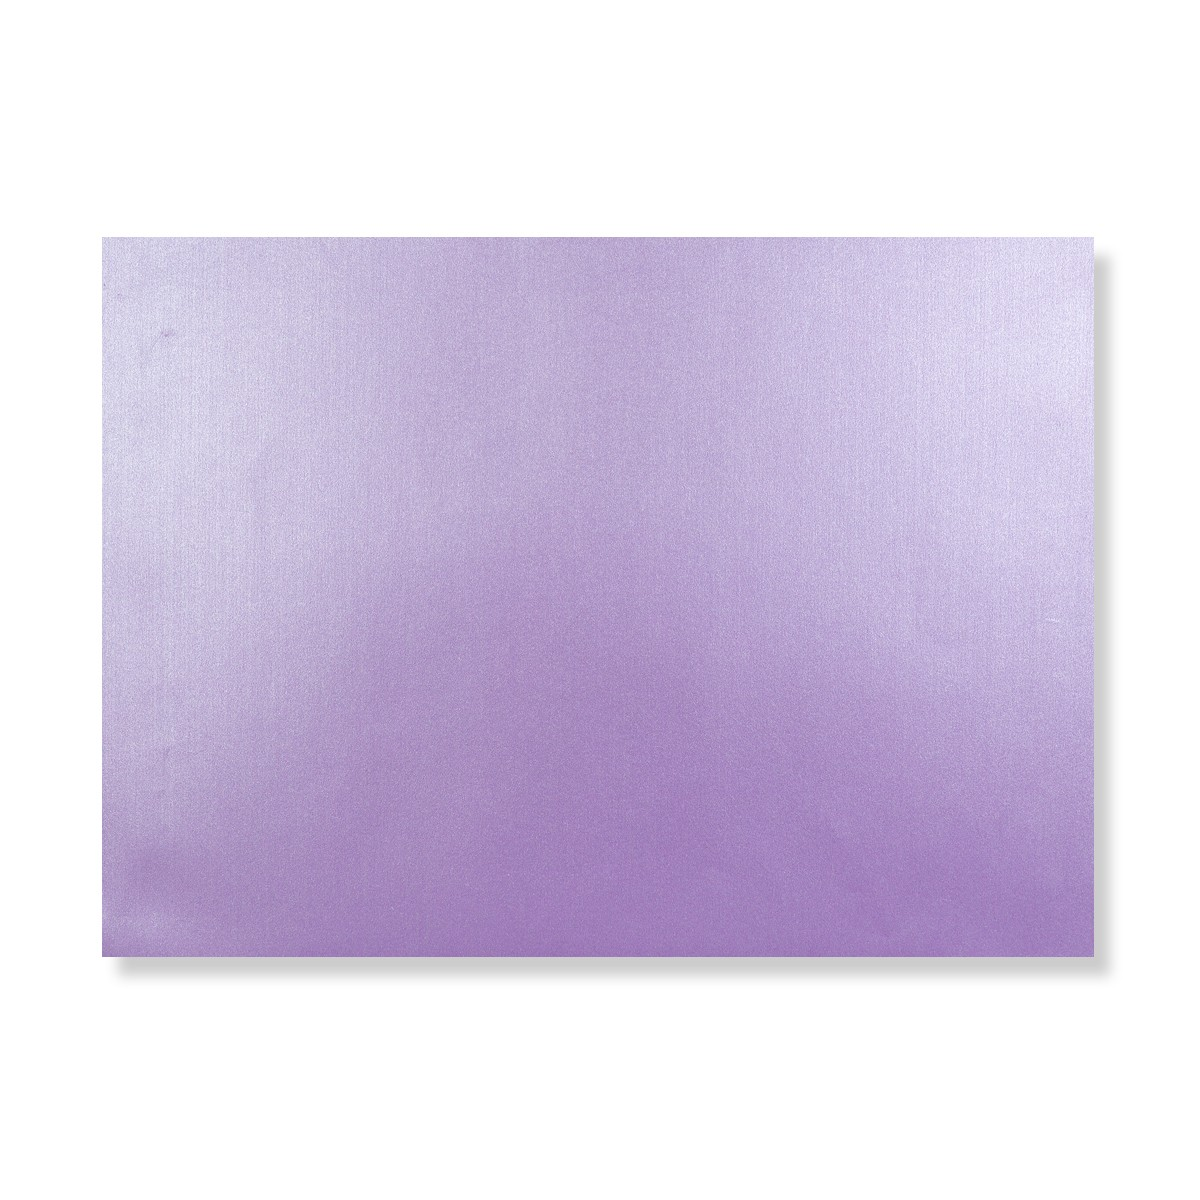 C4 LAVENDER PEARLESCENT ENVELOPES